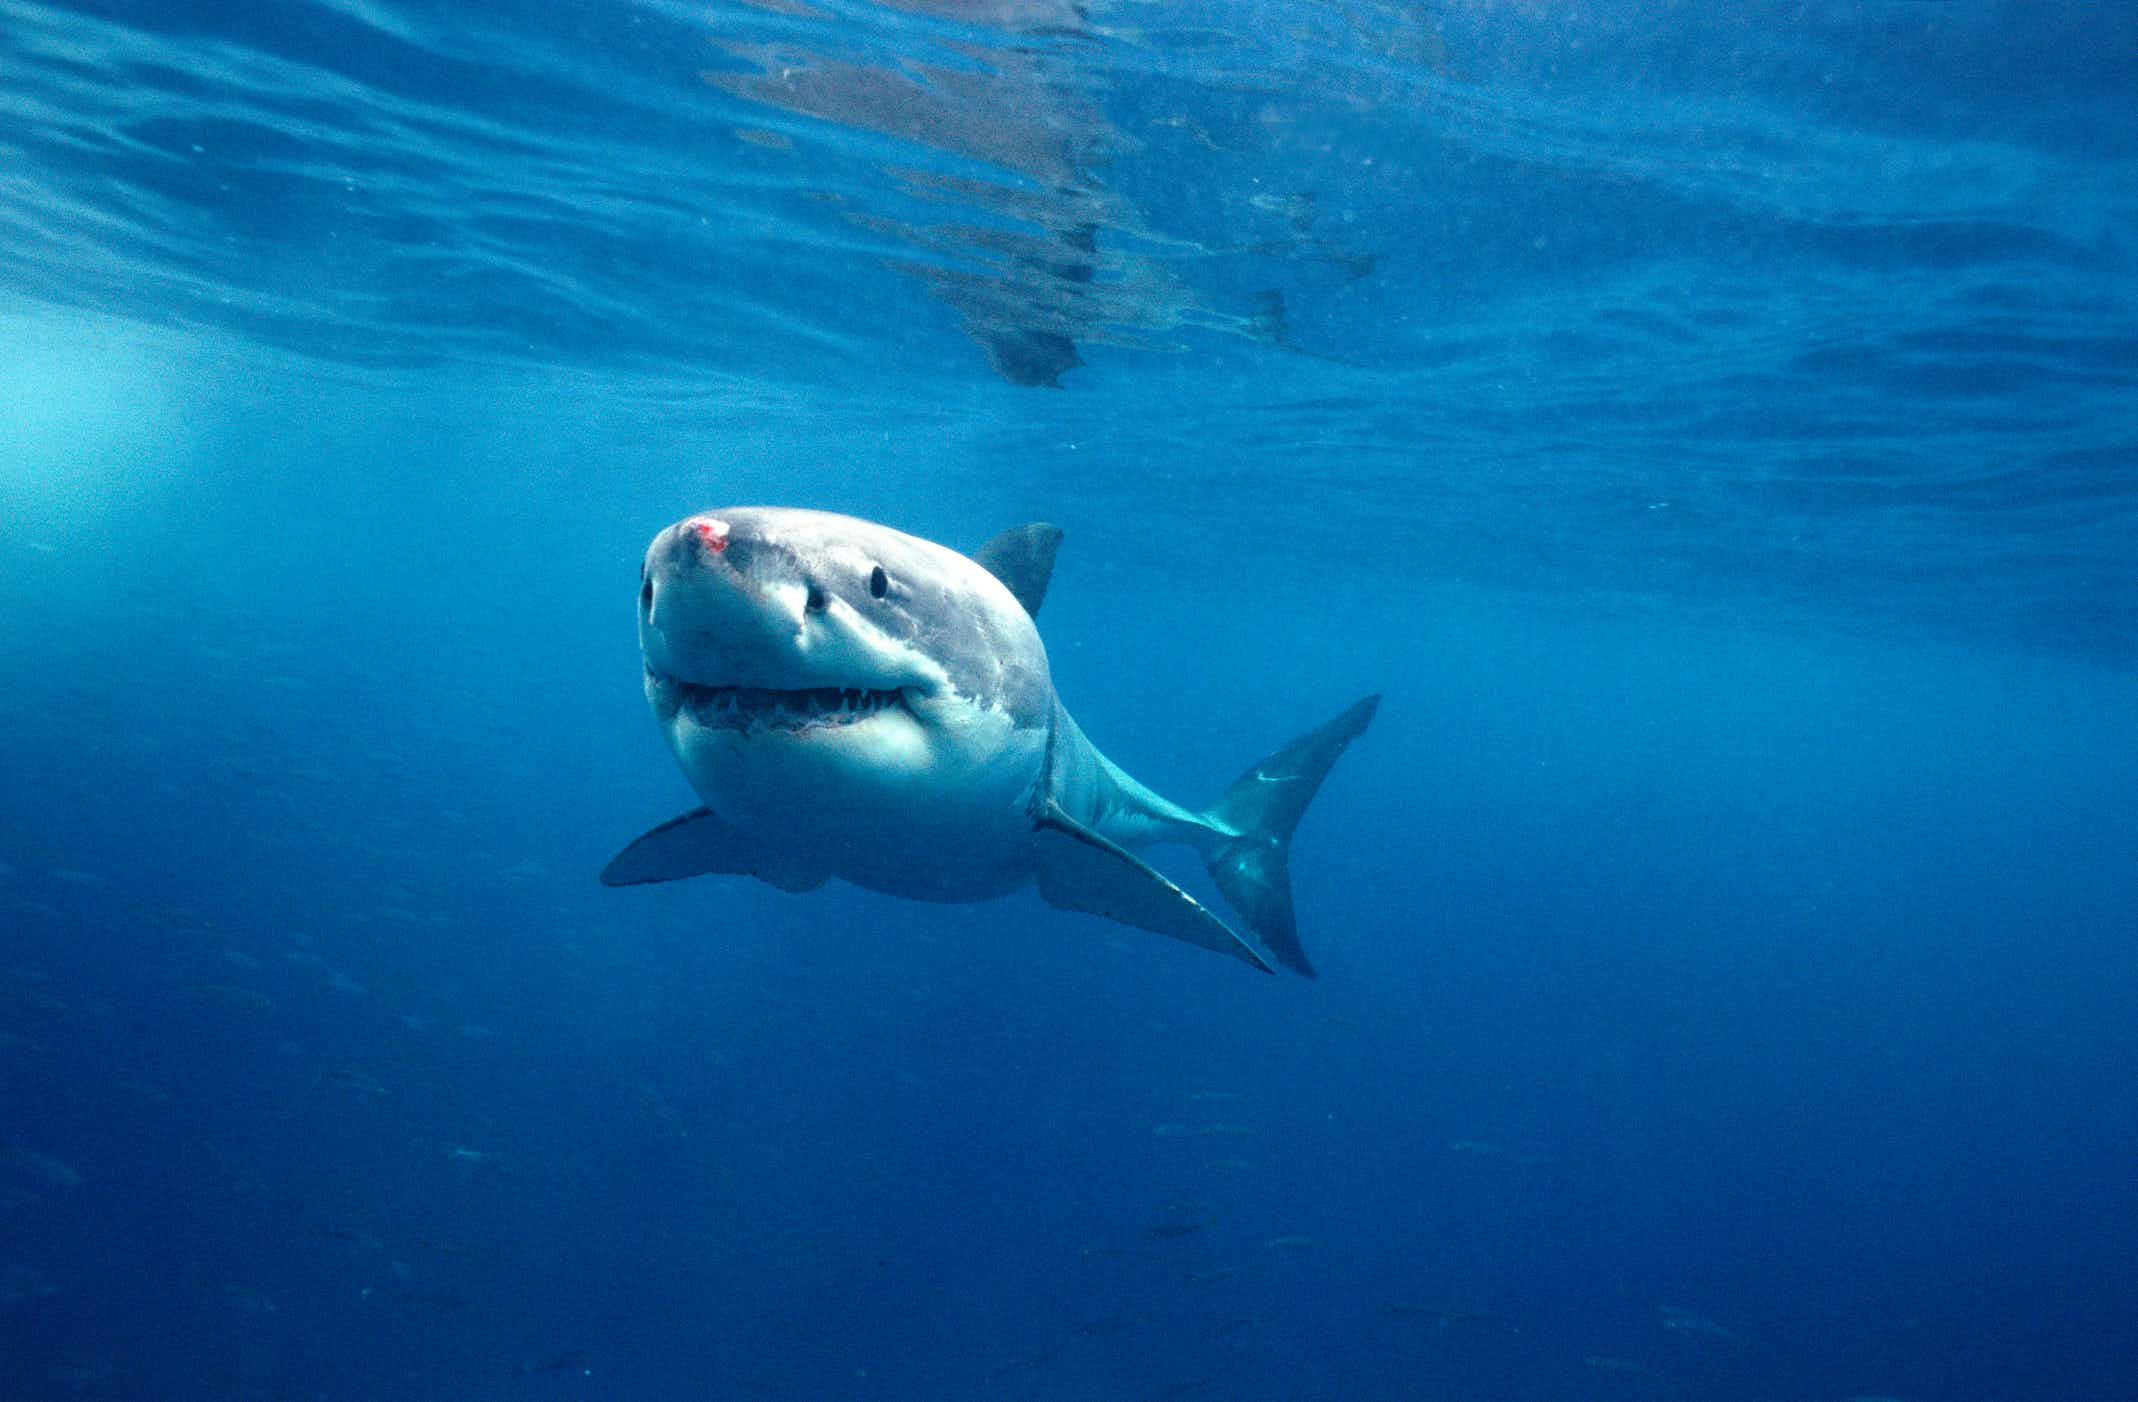 An invisible ocean barrier has been invented in Australia in a bid to prevent shark attacks